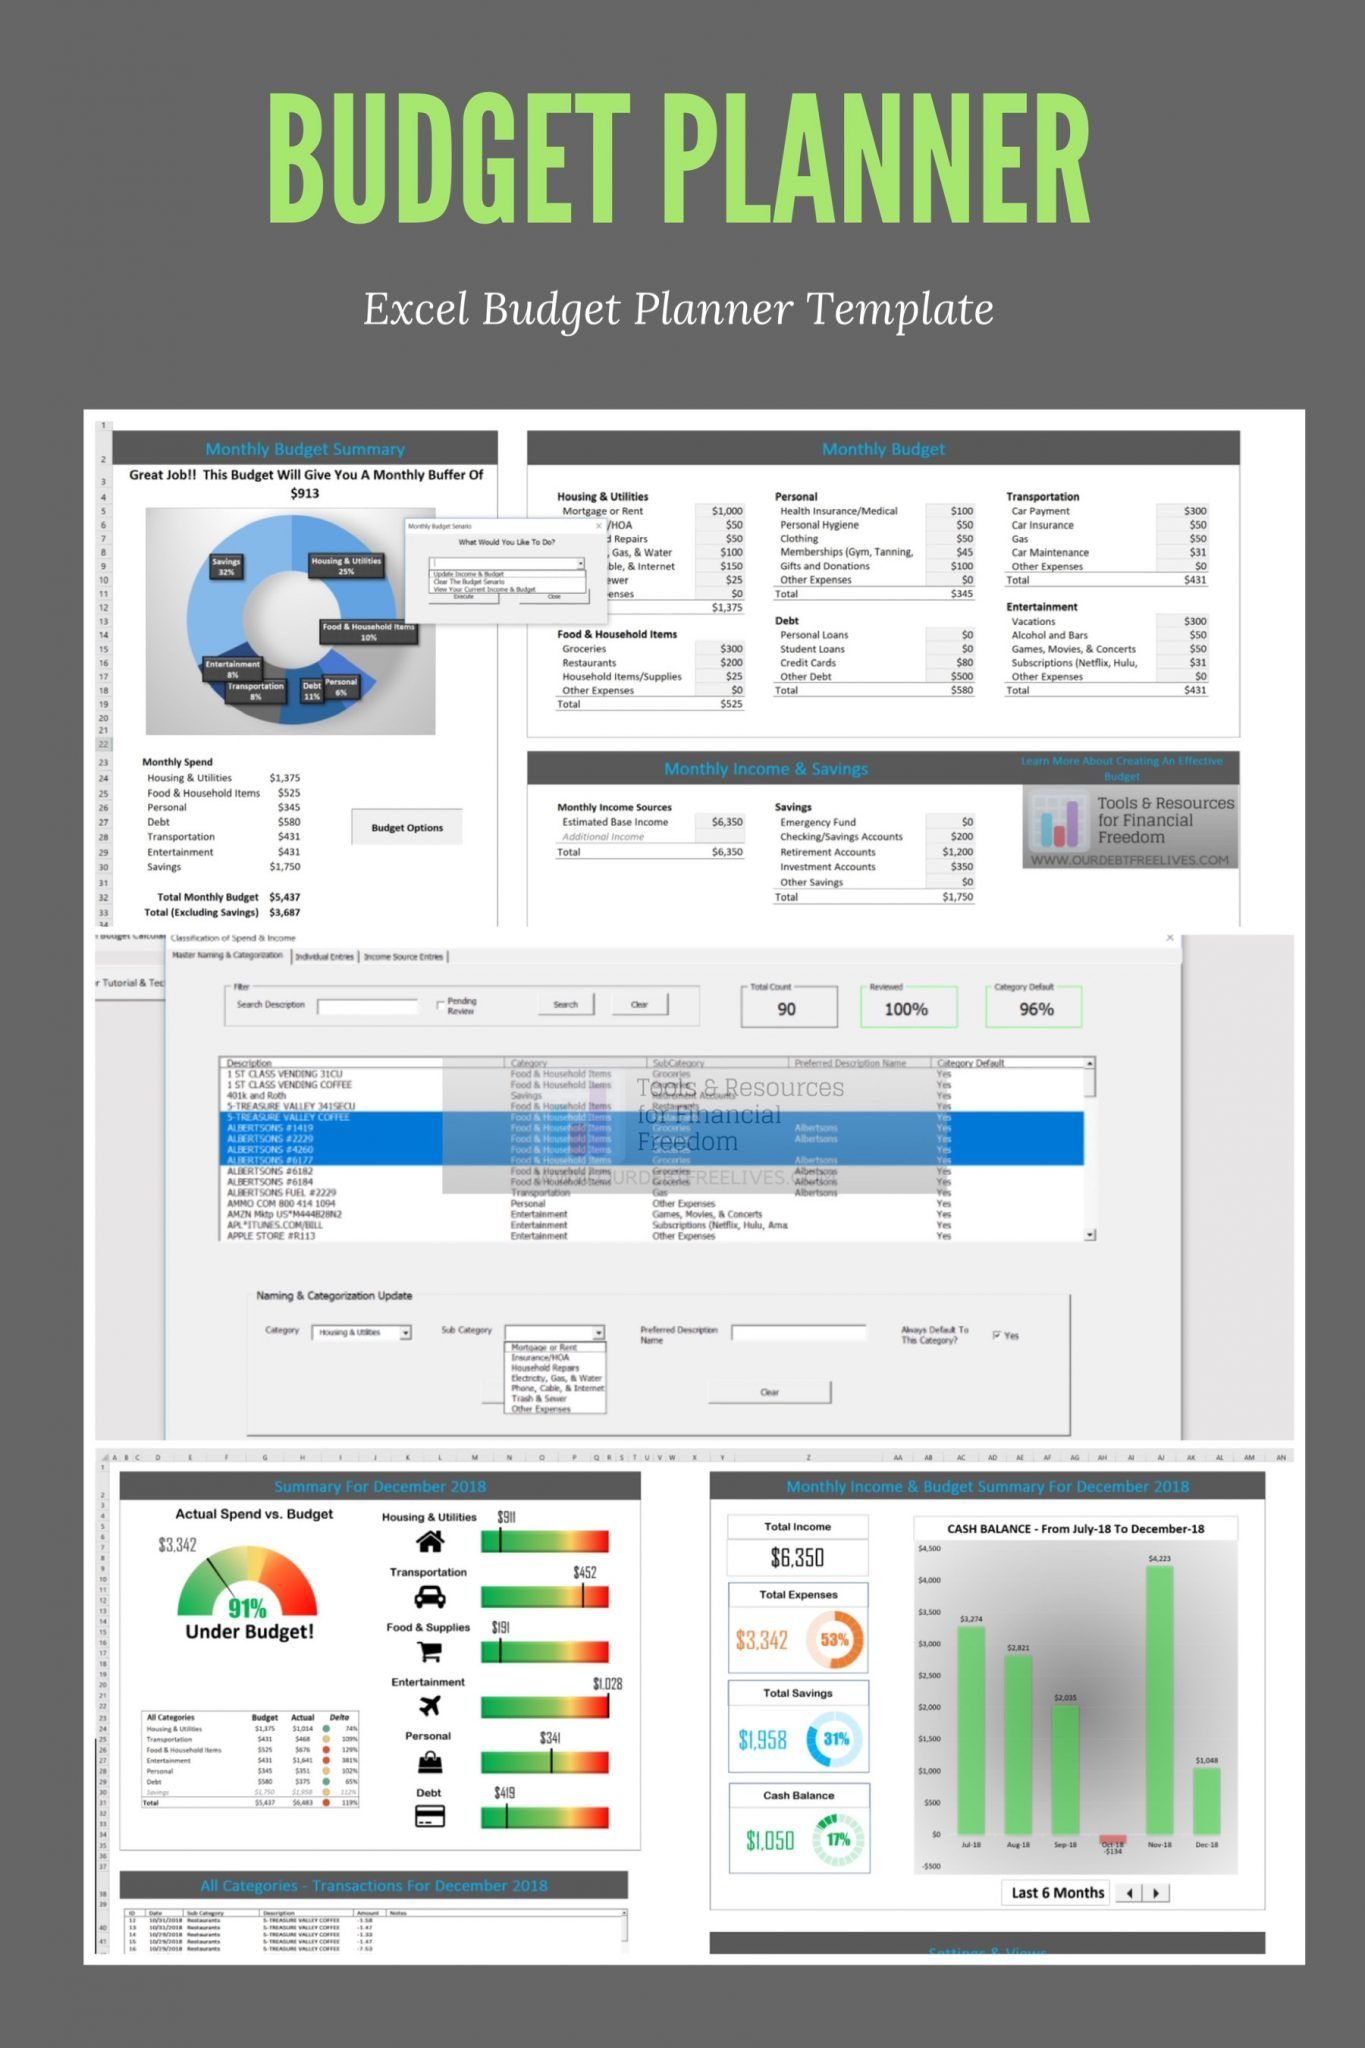 Excel Budget Template Budget planner template, Excel